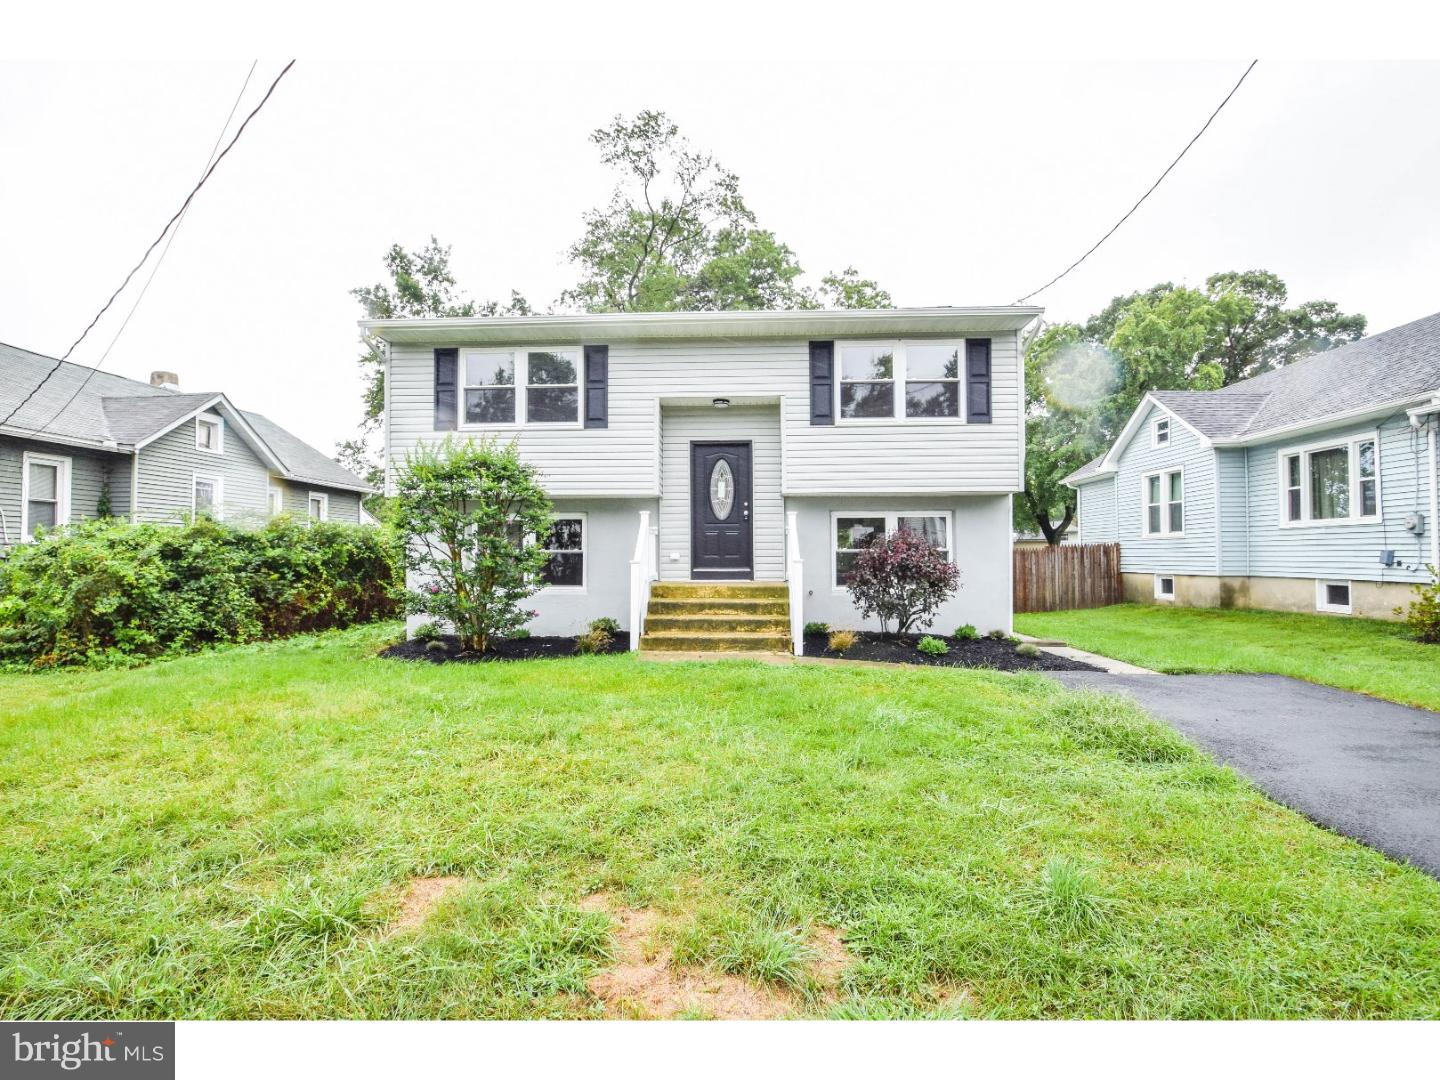 220 E WASHINGTON AVENUE, MAGNOLIA, NJ 08049